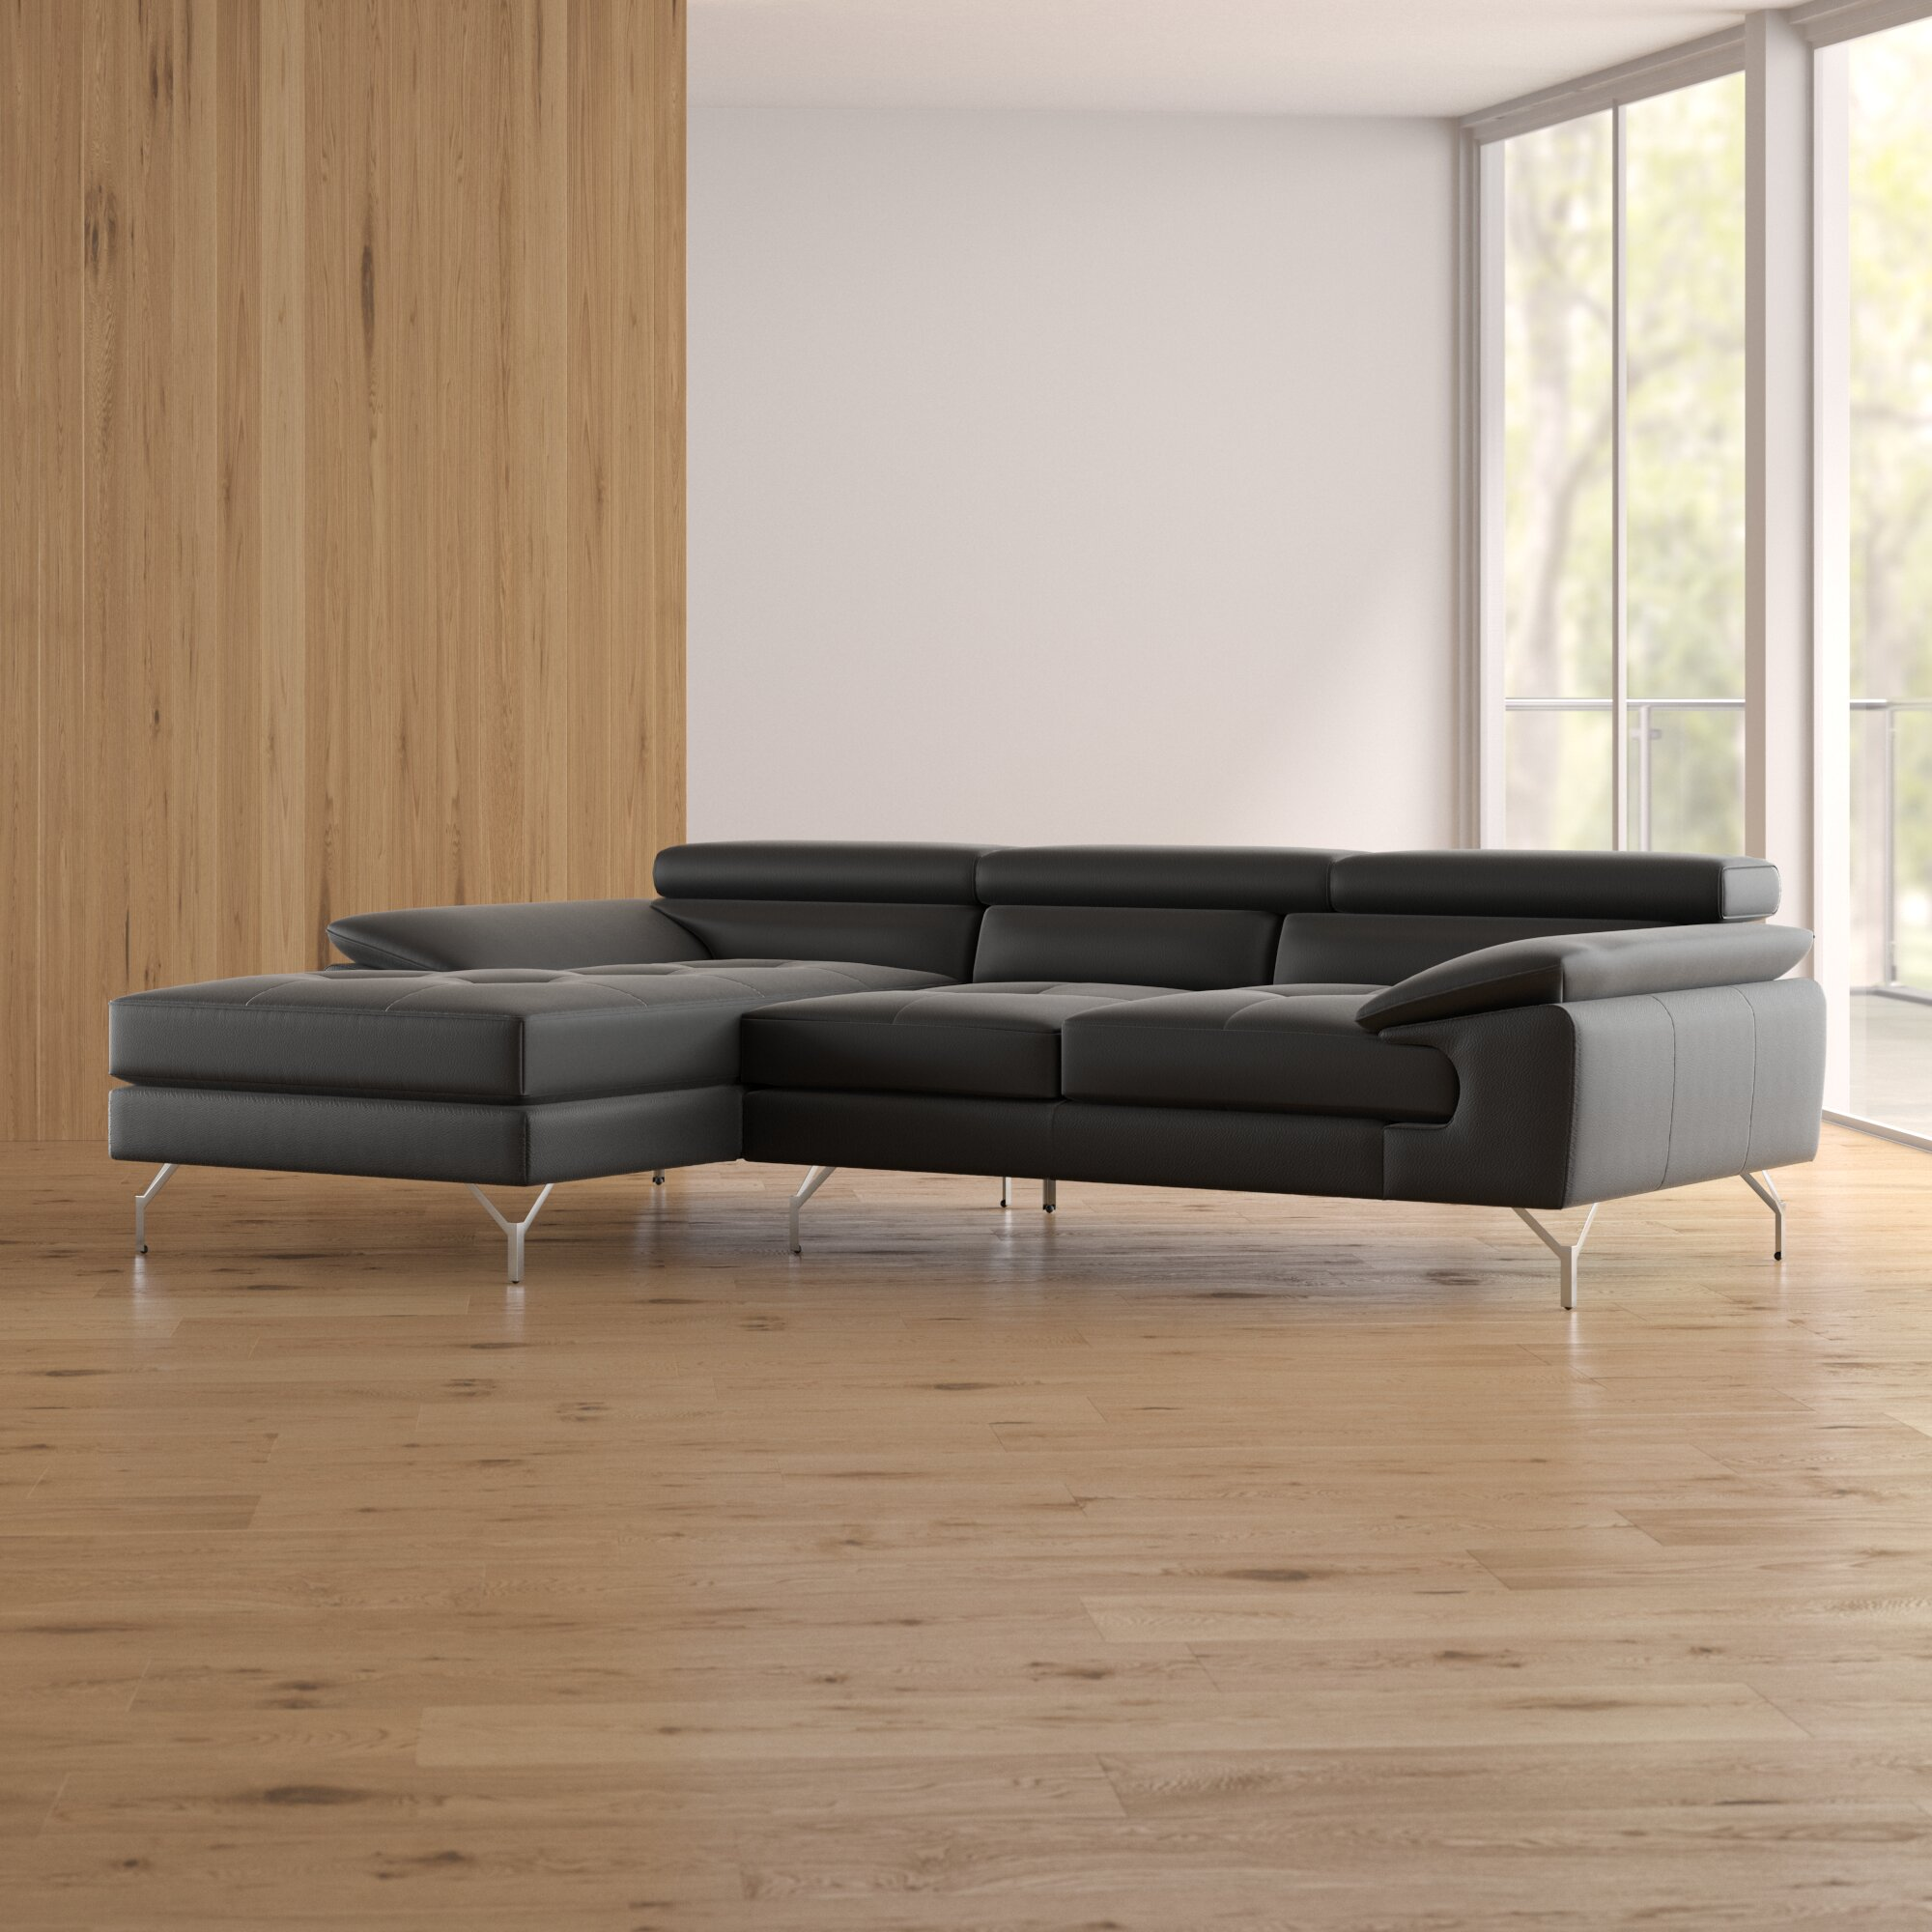 Wade logan courtdale leather sectional reviews wayfair